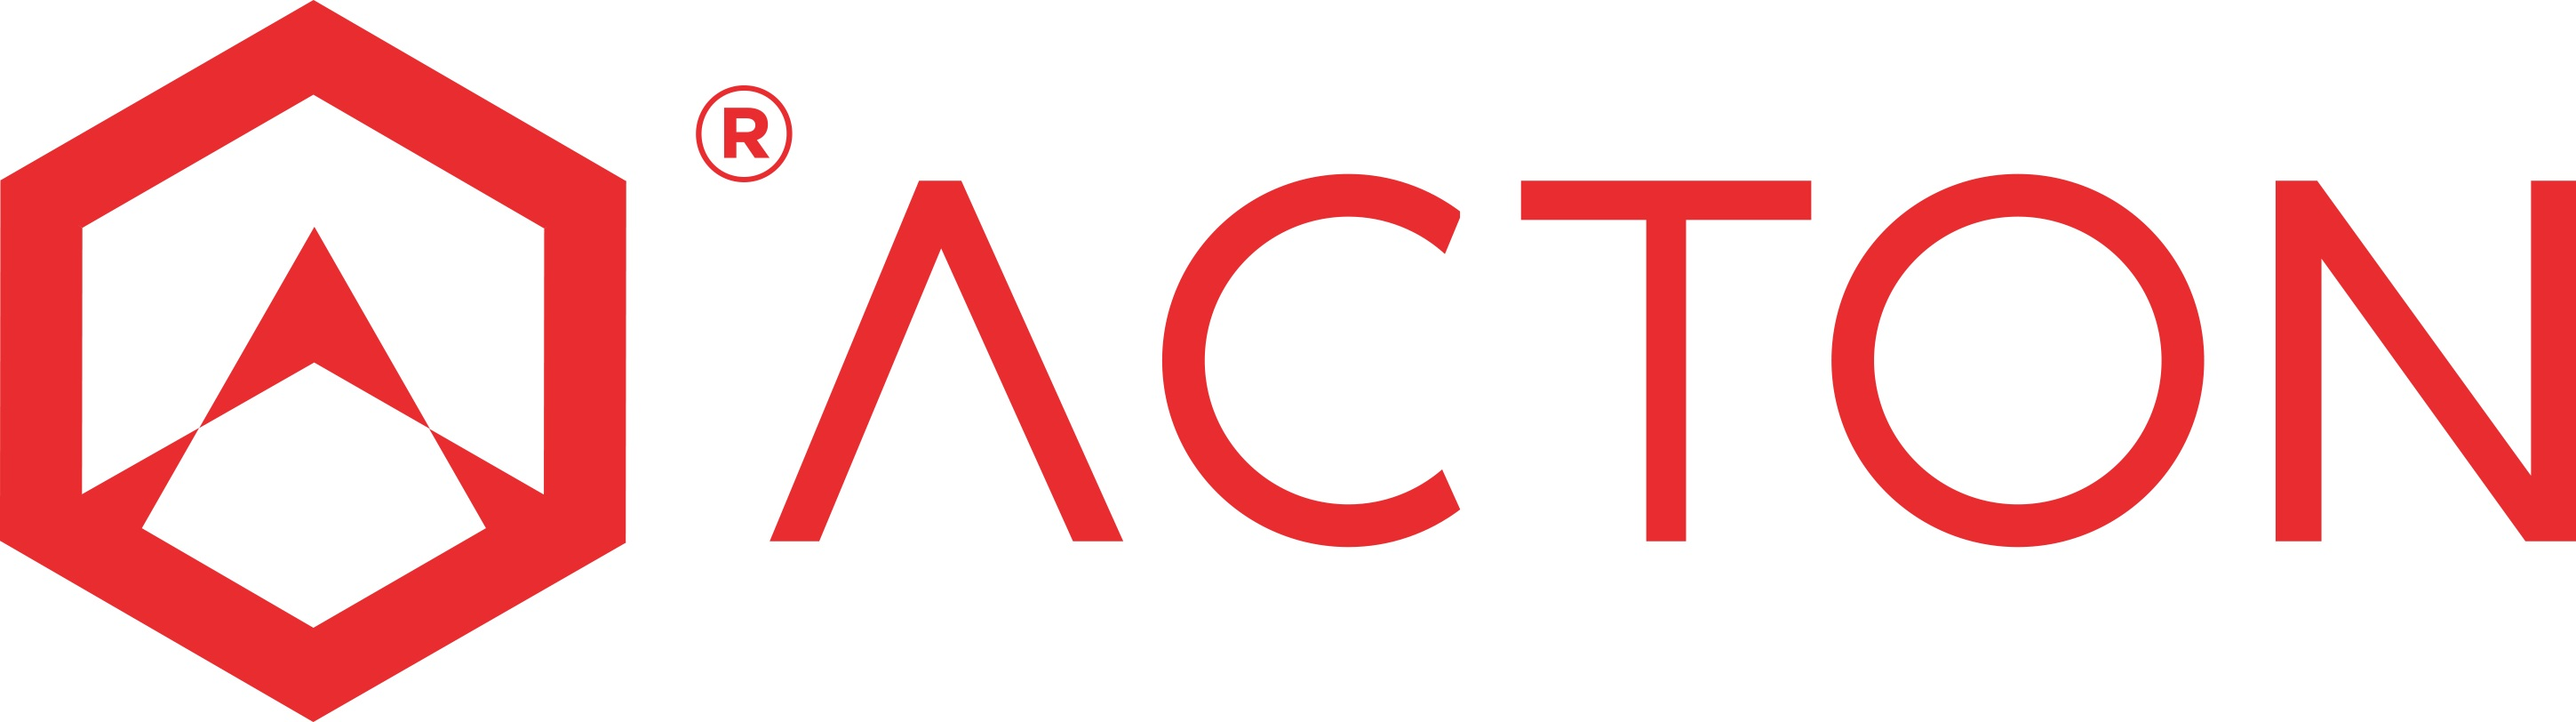 ACTON_logo_b_red.jpg